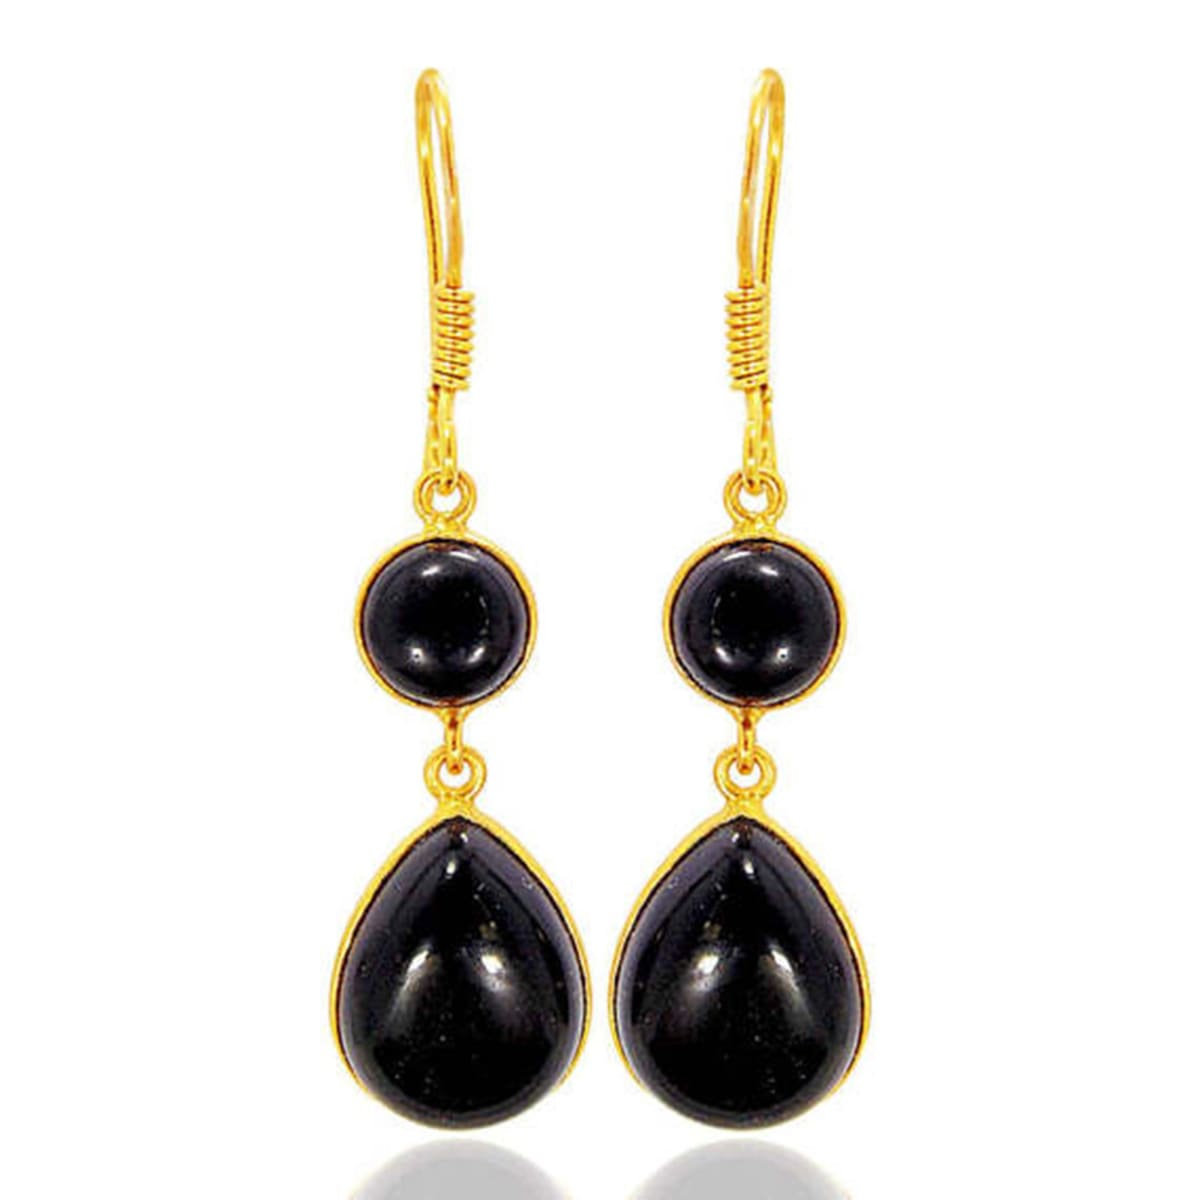 18K Gold Plated Black Onyx Gemstone Bezel Set Teardrop Earrings - by Bhagat Jewels